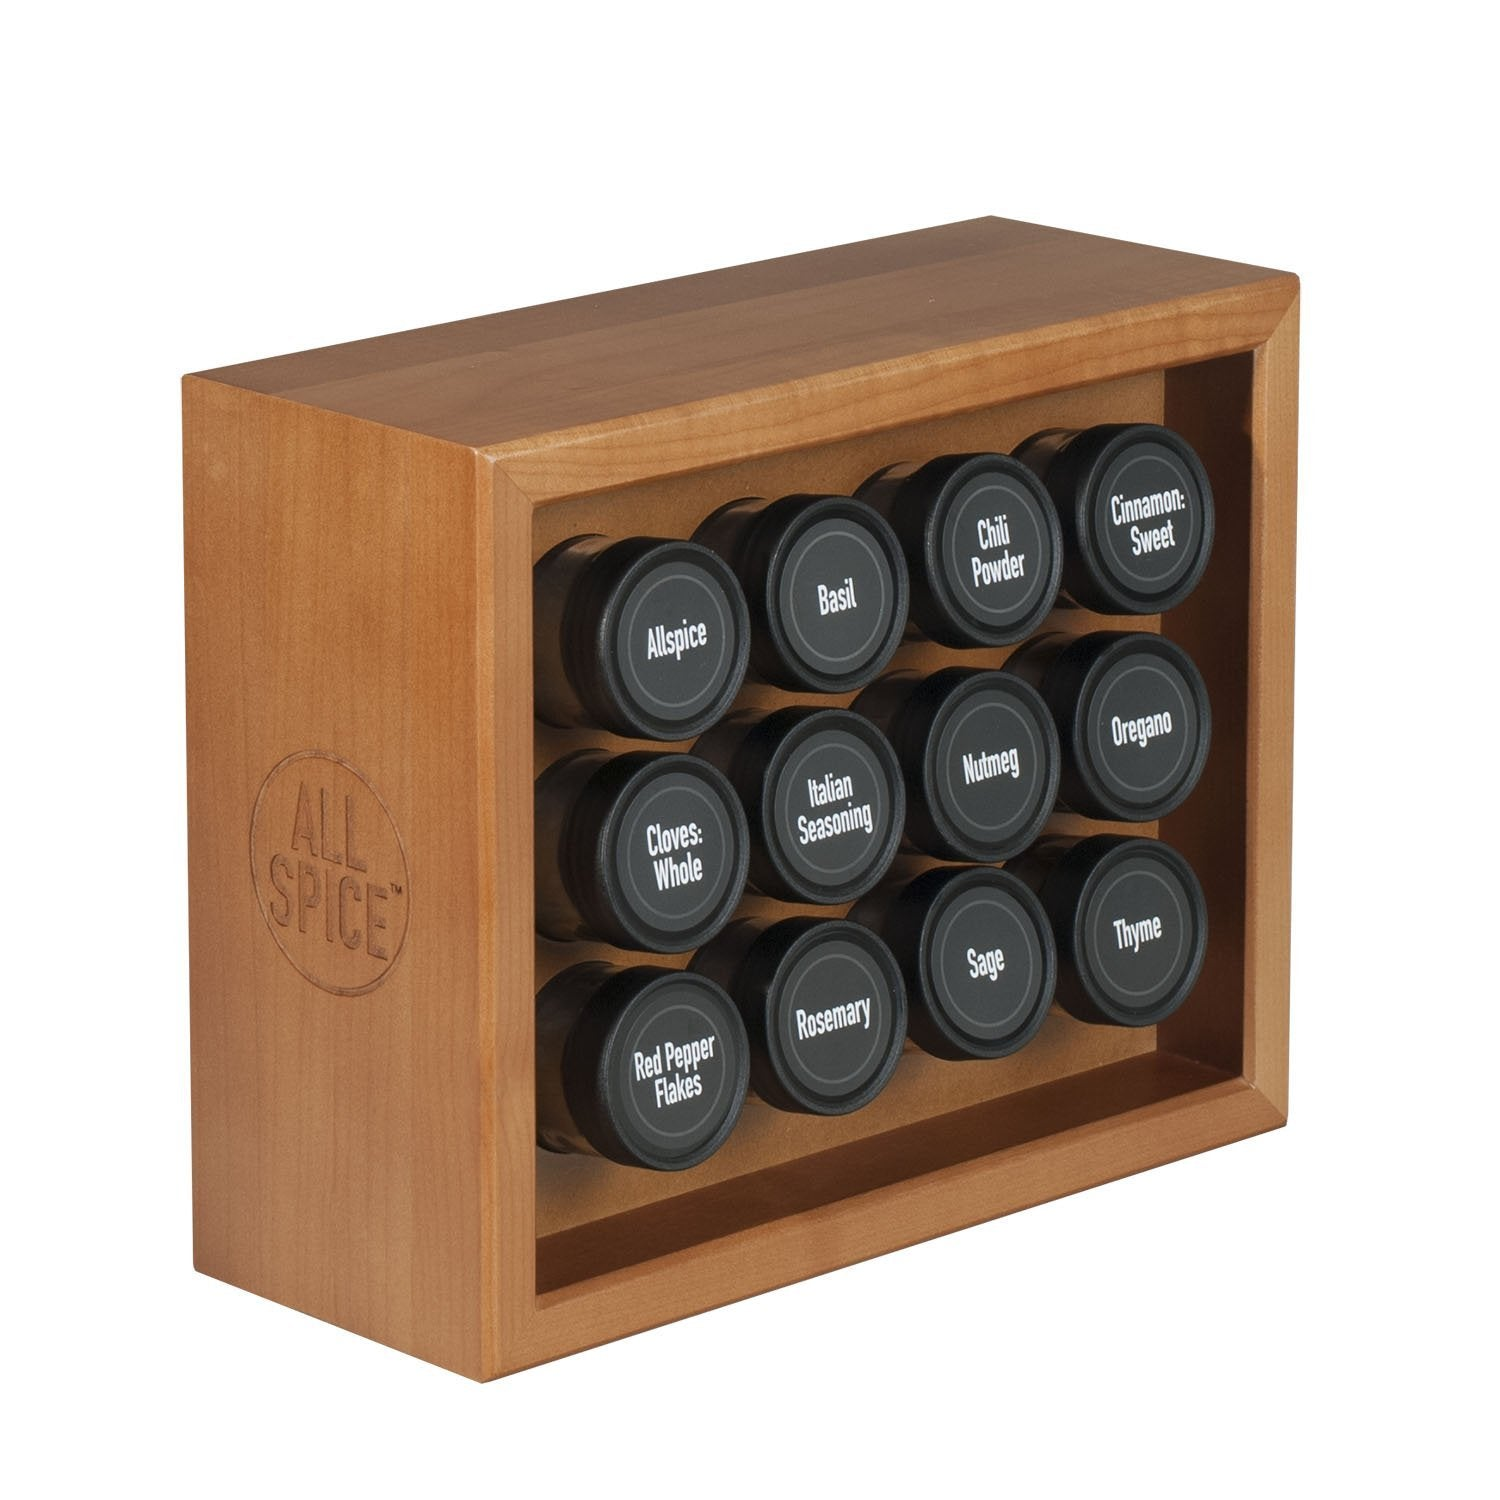 AllSpice Wooden Spice Rack, Includes 12 4oz Jars- Cherry